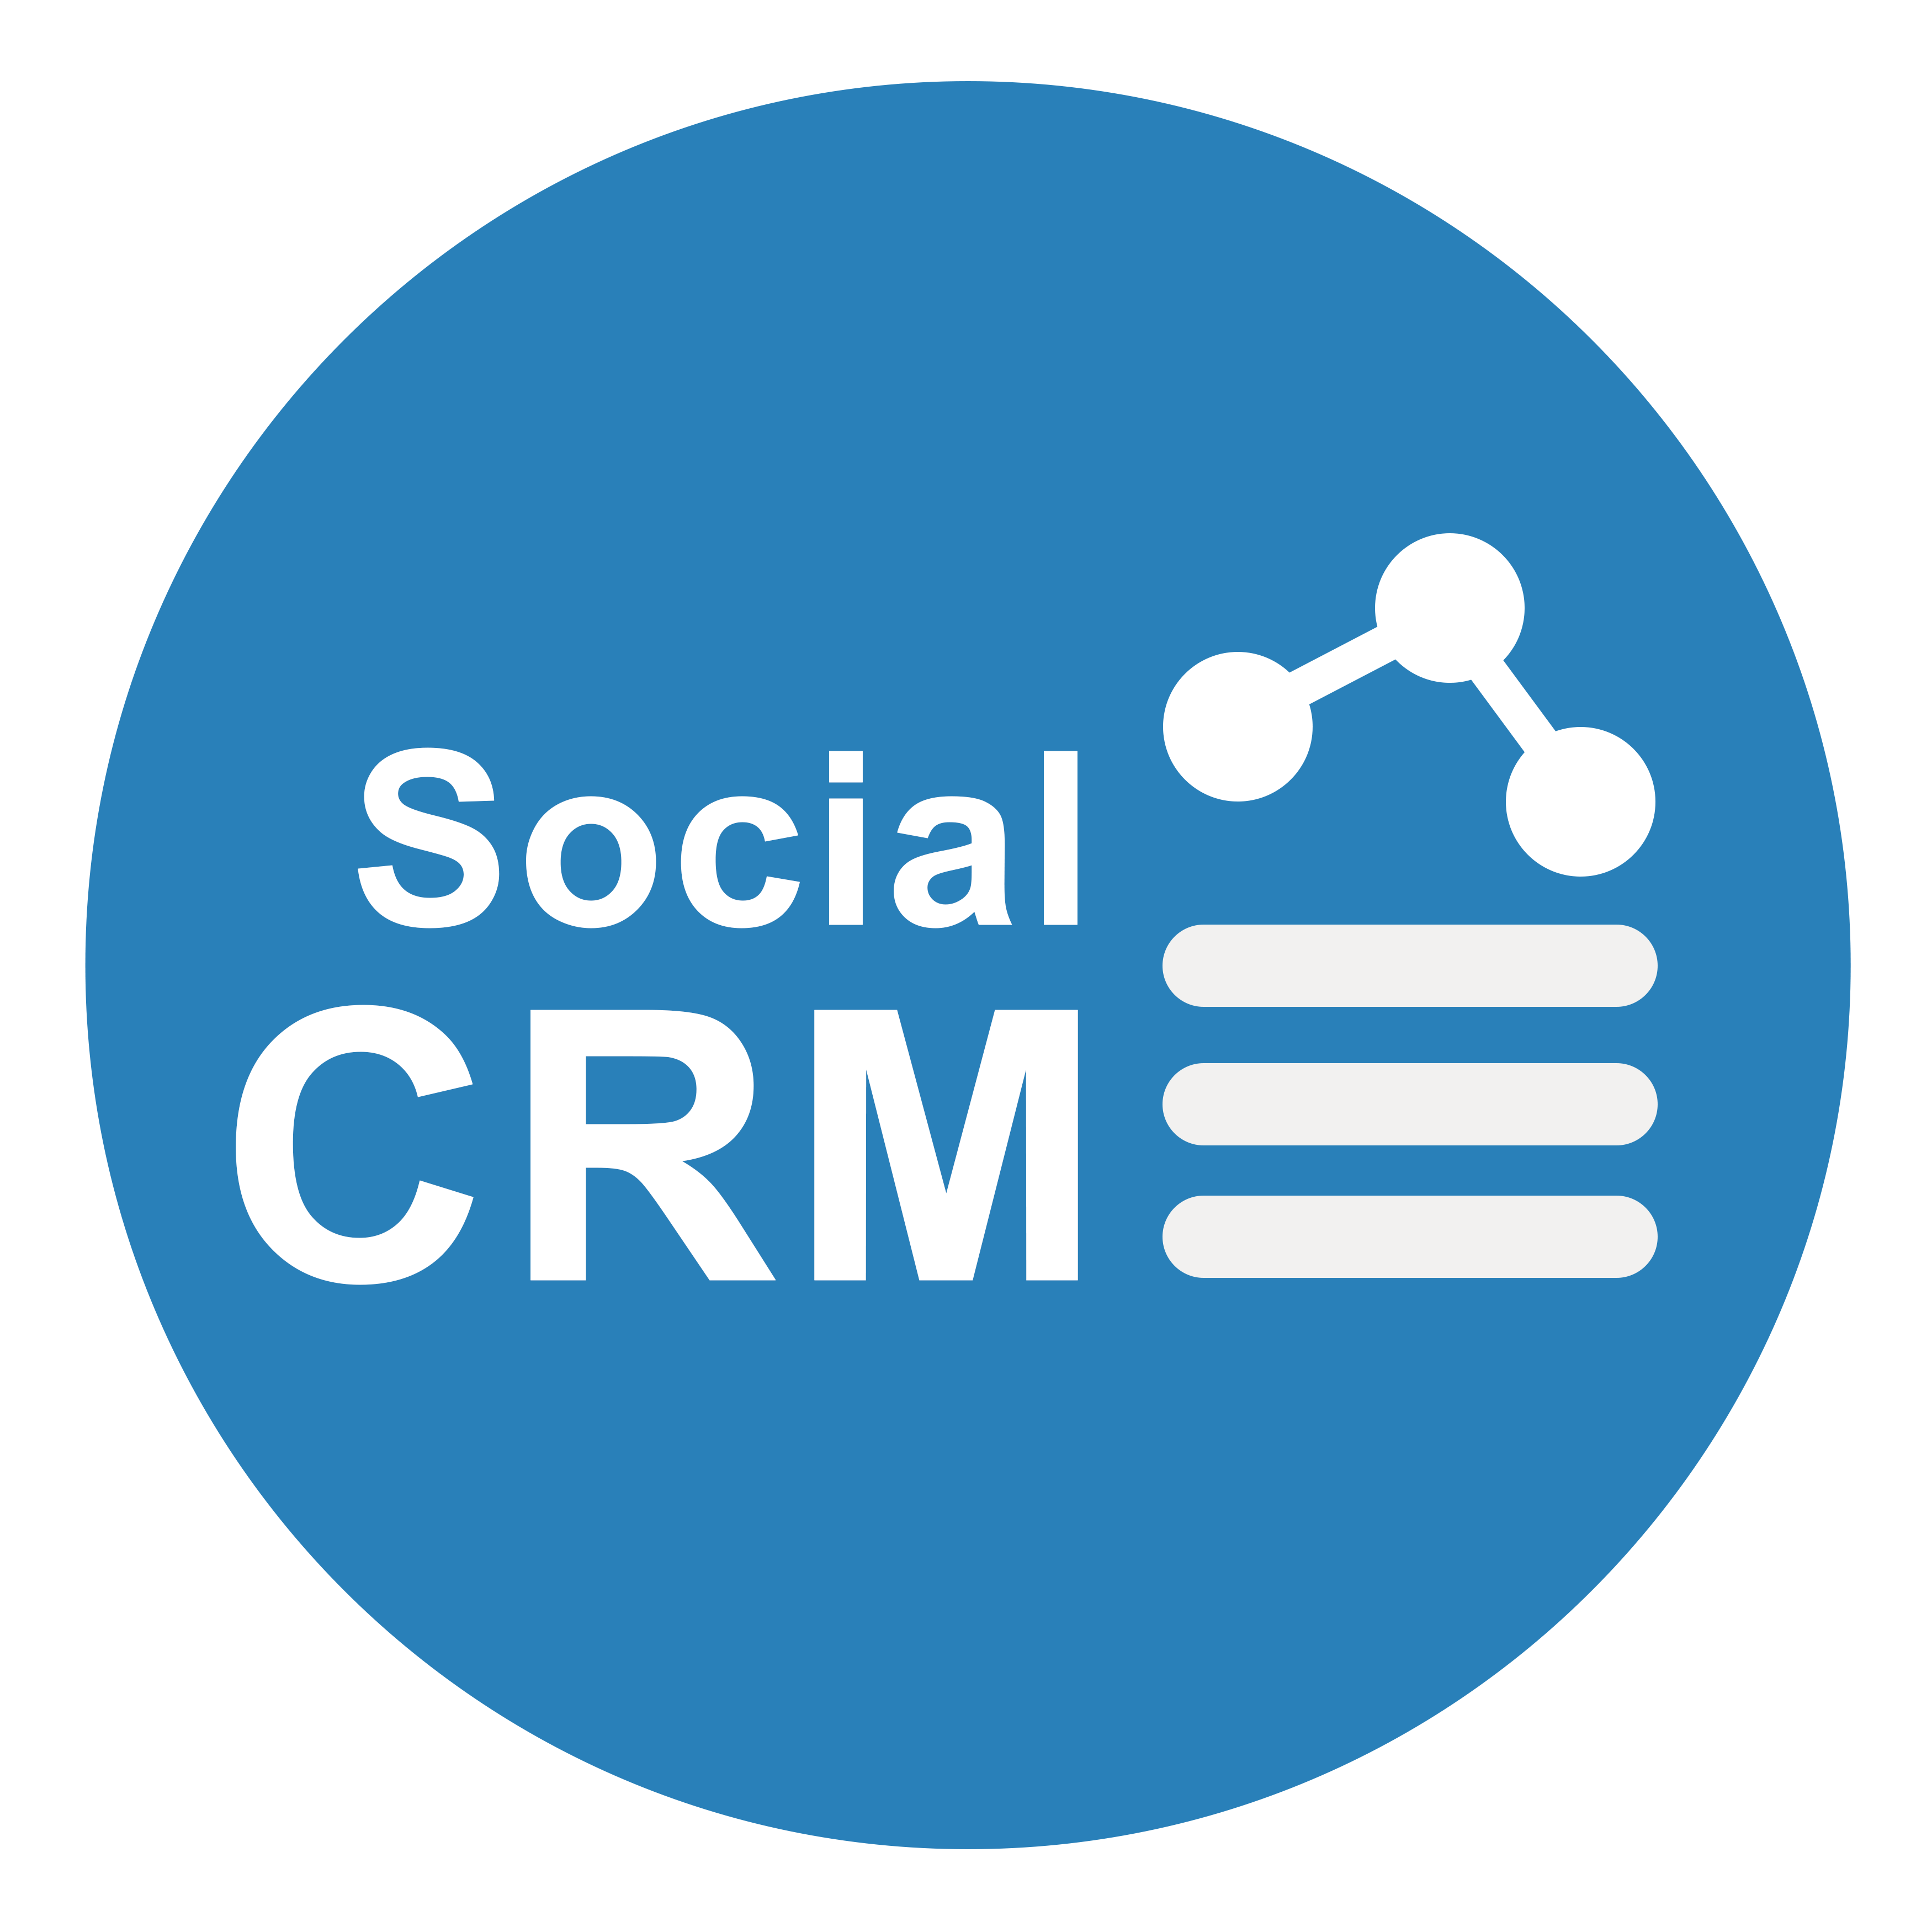 social crm master thesis Members, and social system except for the technology itself (rogers, 1995) theory of planned behavior (tpb) is the model widely used in predicting and explaining human.